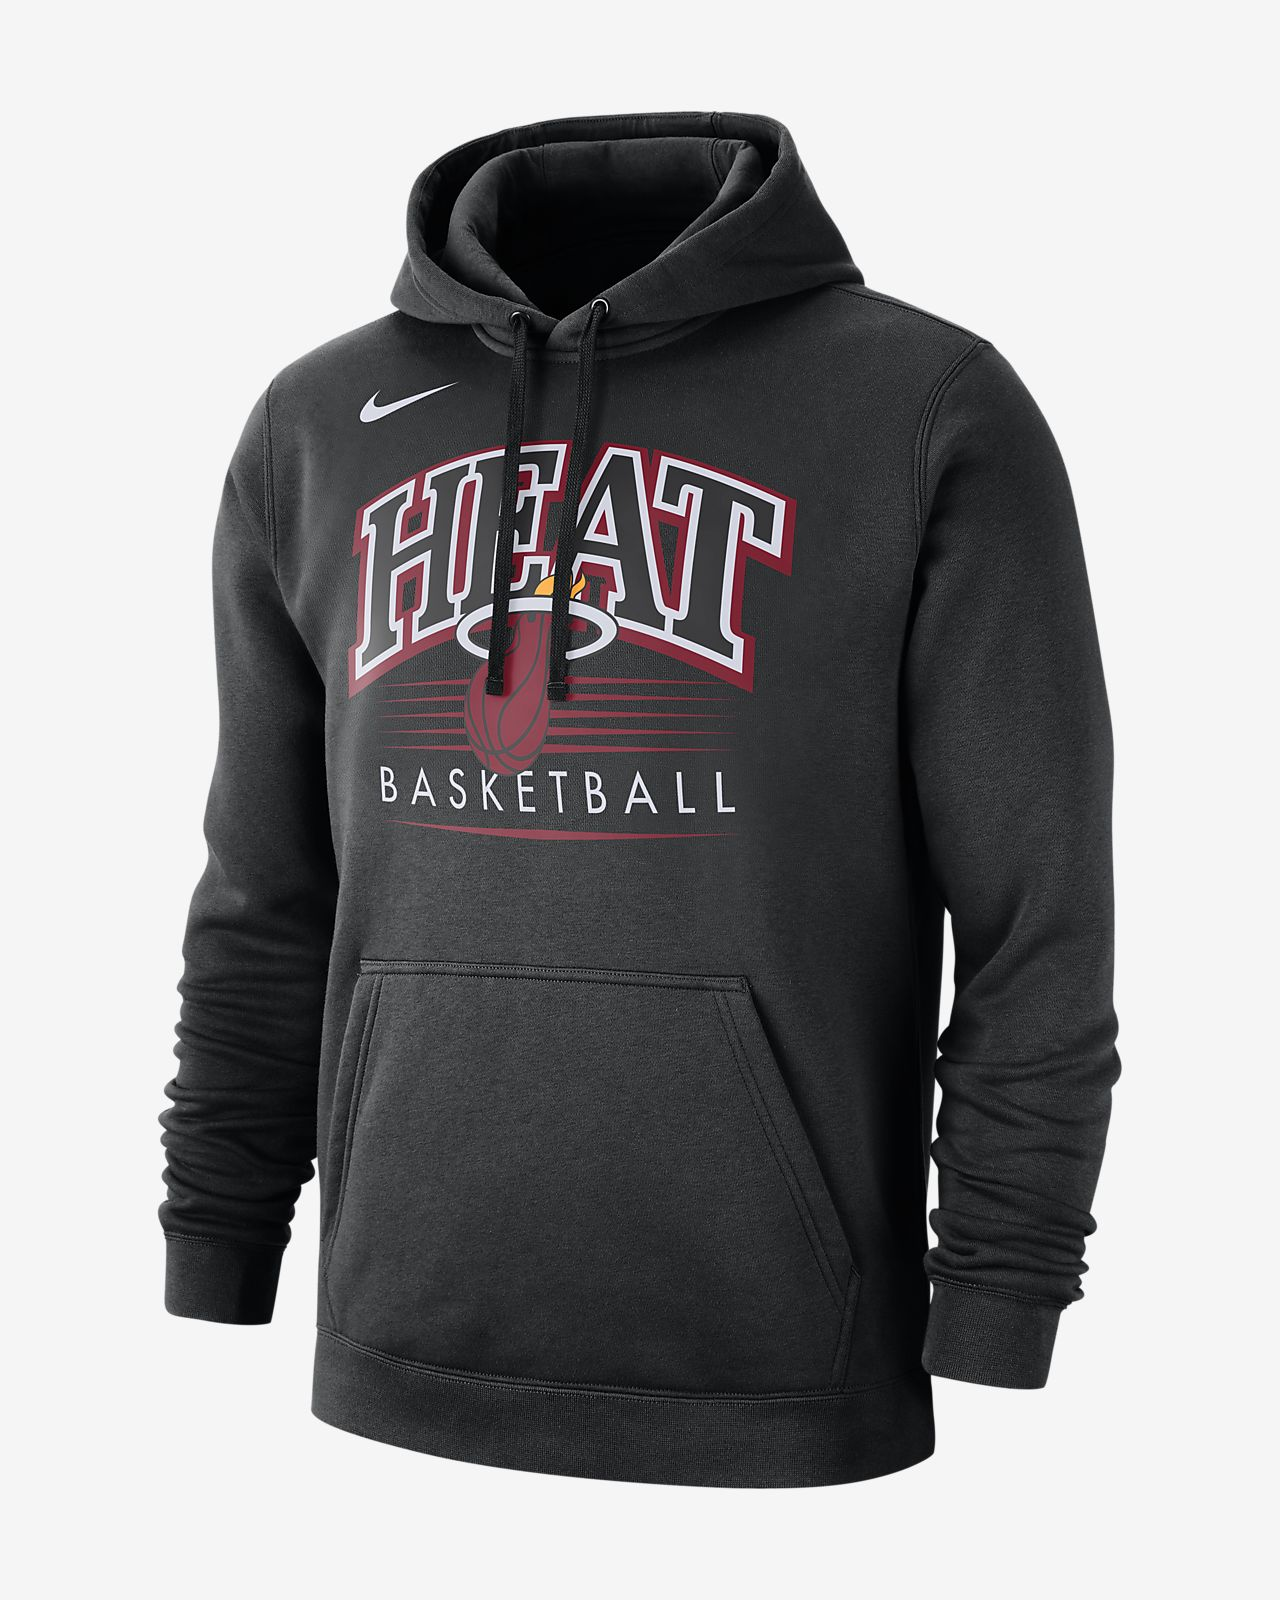 Miami Heat Nike Men's NBA Hoodie